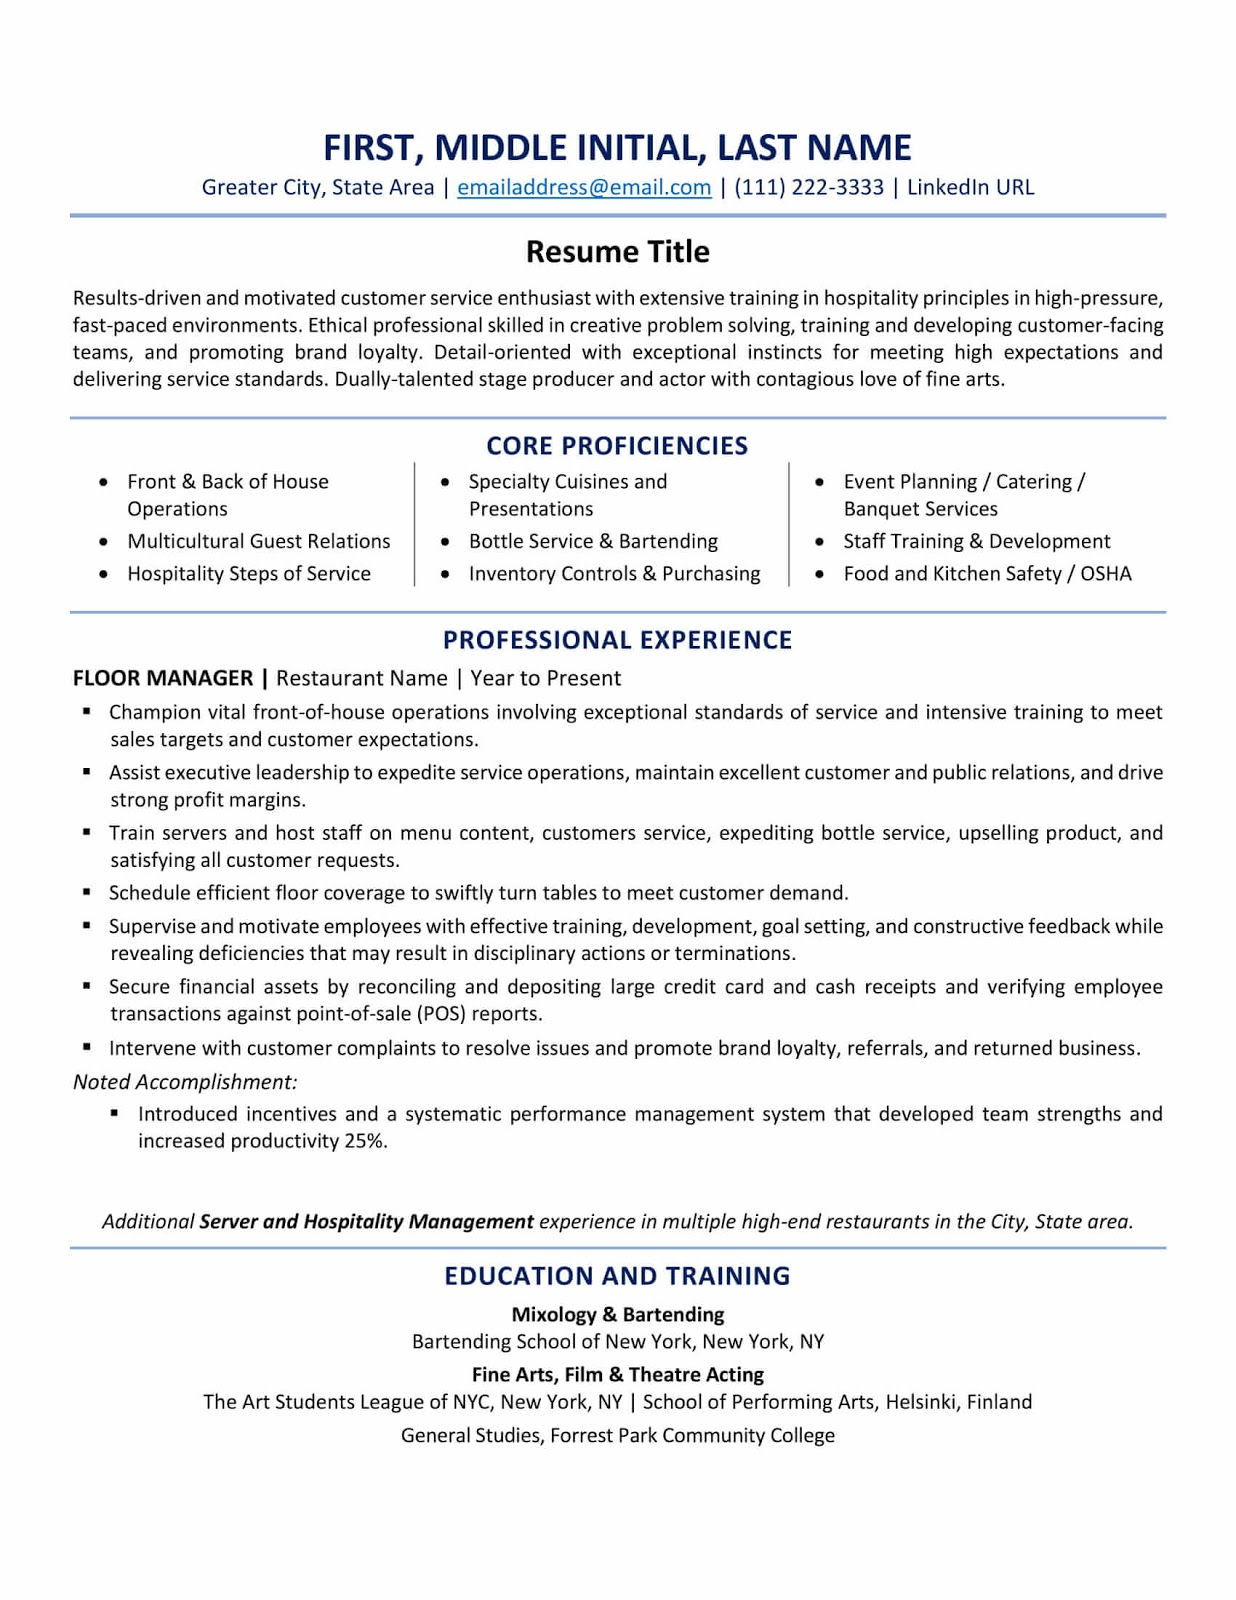 resume format best tips and examples updated current styles samples como hacer un sin Resume Current Resume Styles Samples